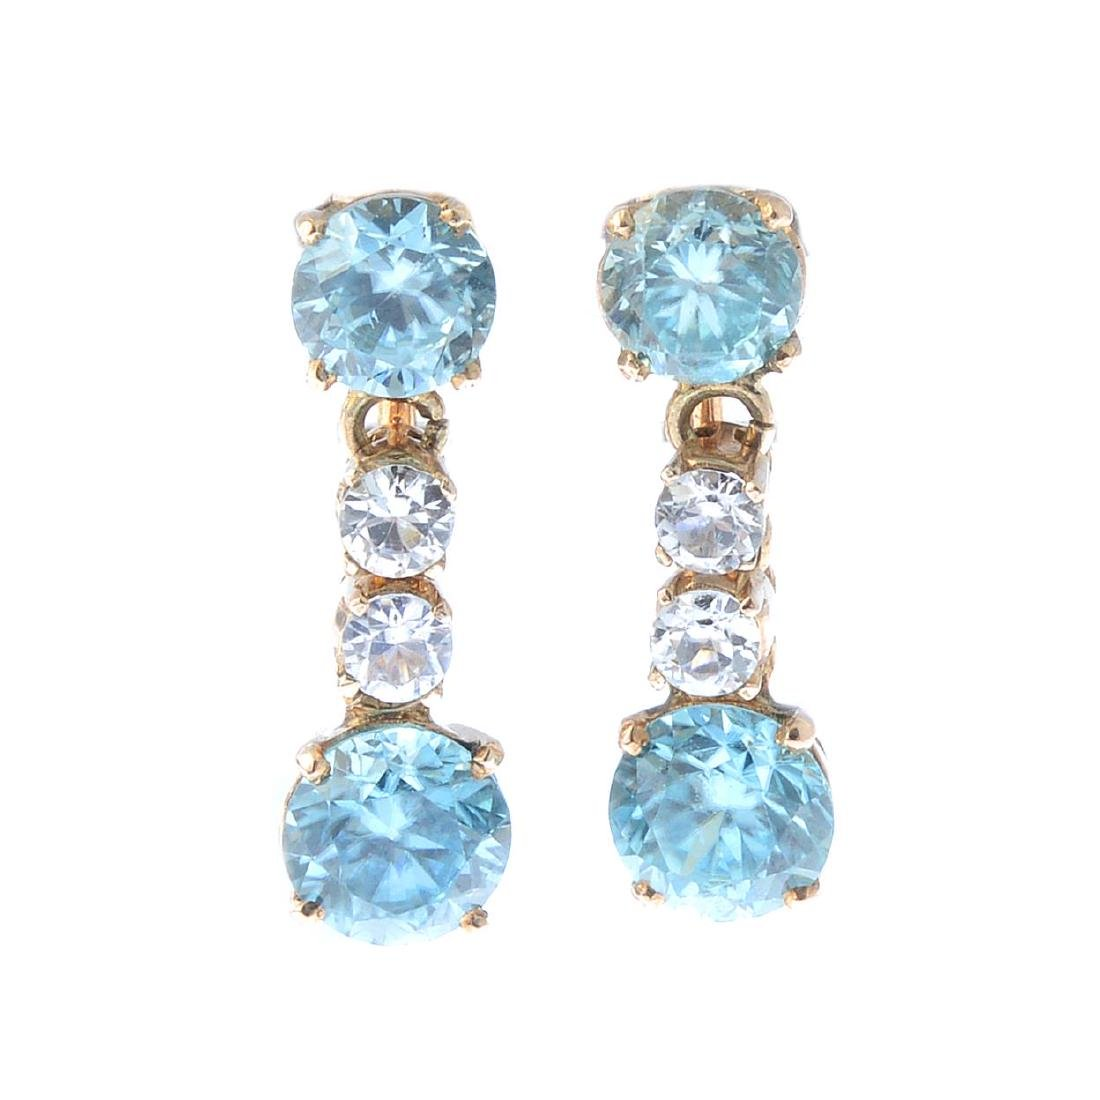 A pair of zircon and rock crystal earrings. Each